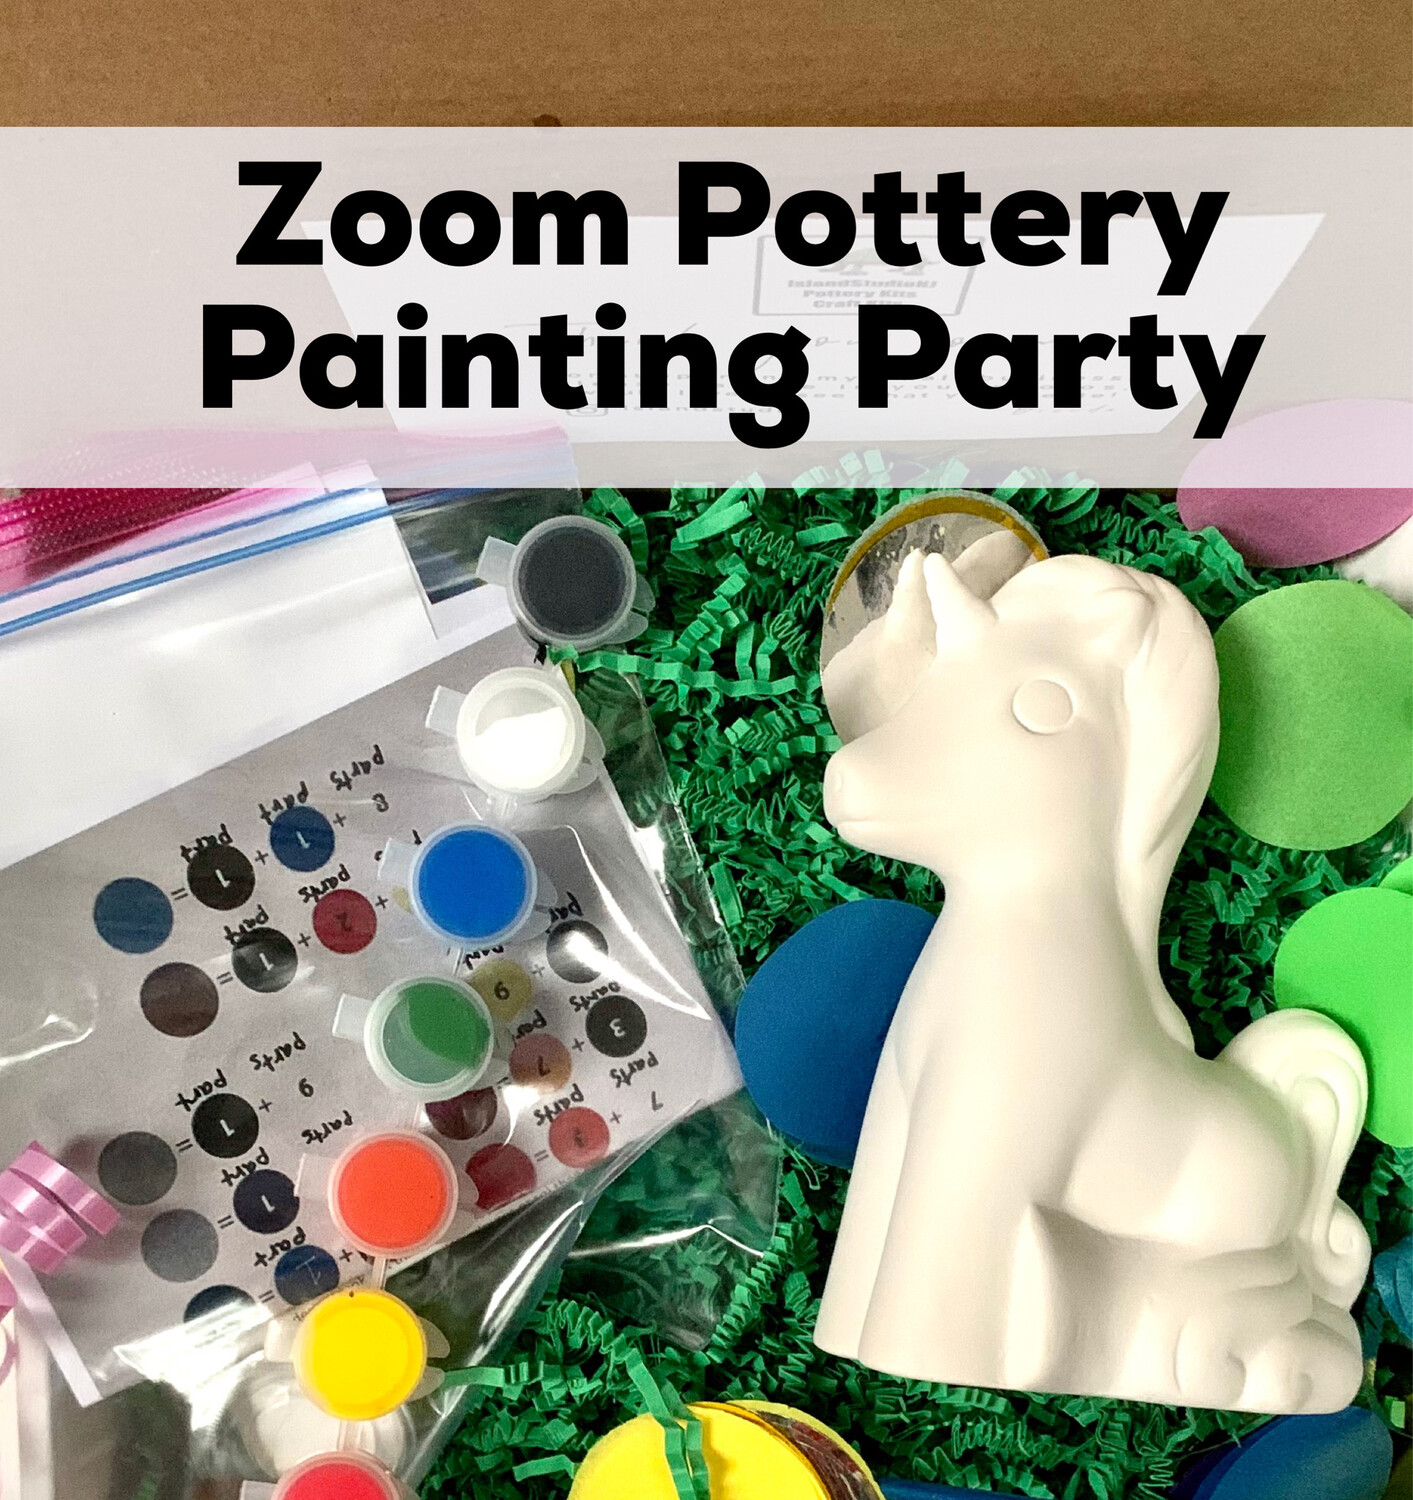 Zoom Pottery Painting Party July 27, 2021 from 3-4:30pm - Free With Pottery Purchase